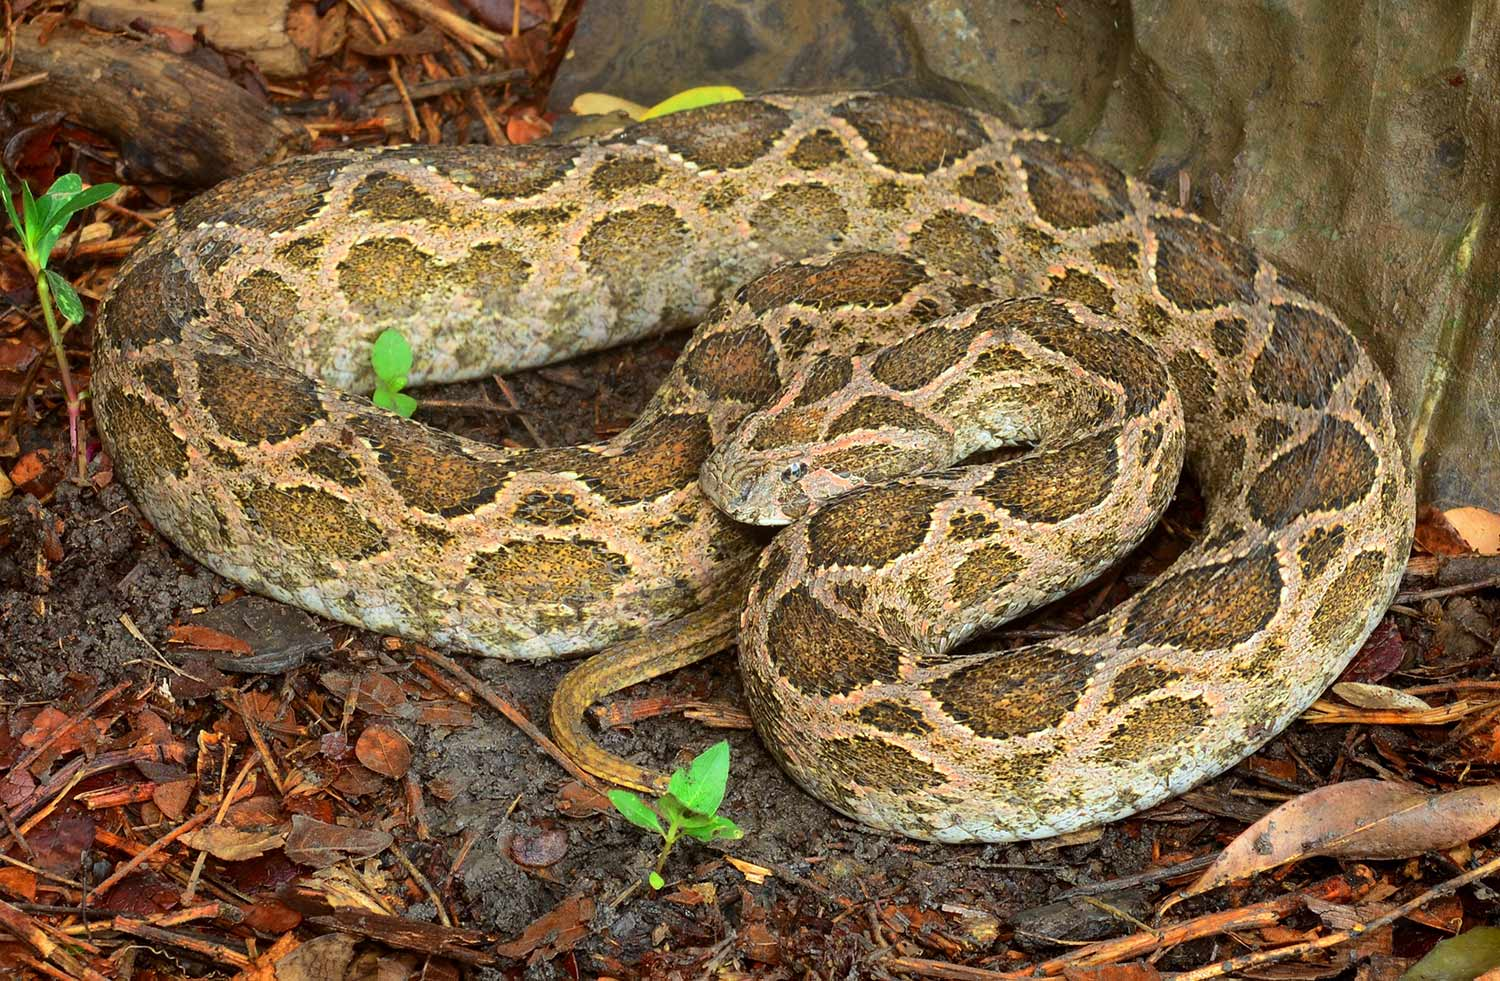 10 of the Most Venomous Snakes in the World | Field & Stream